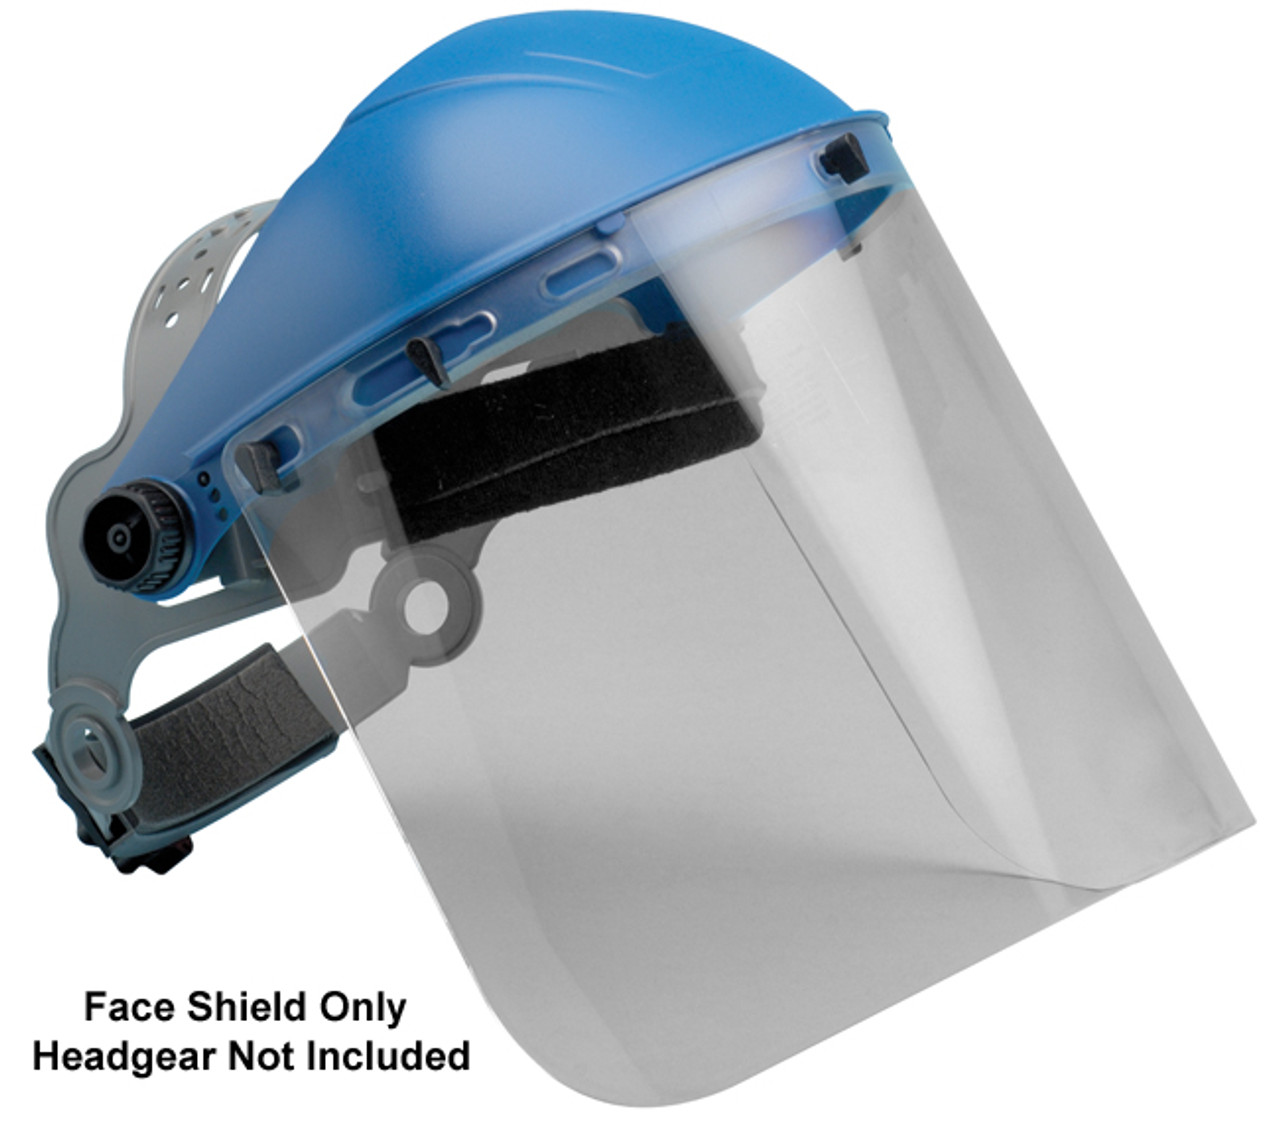 Safety Face Shield >> Elvex Clear Polycarbonate Face Shield 8 X 15 5 X 2mm